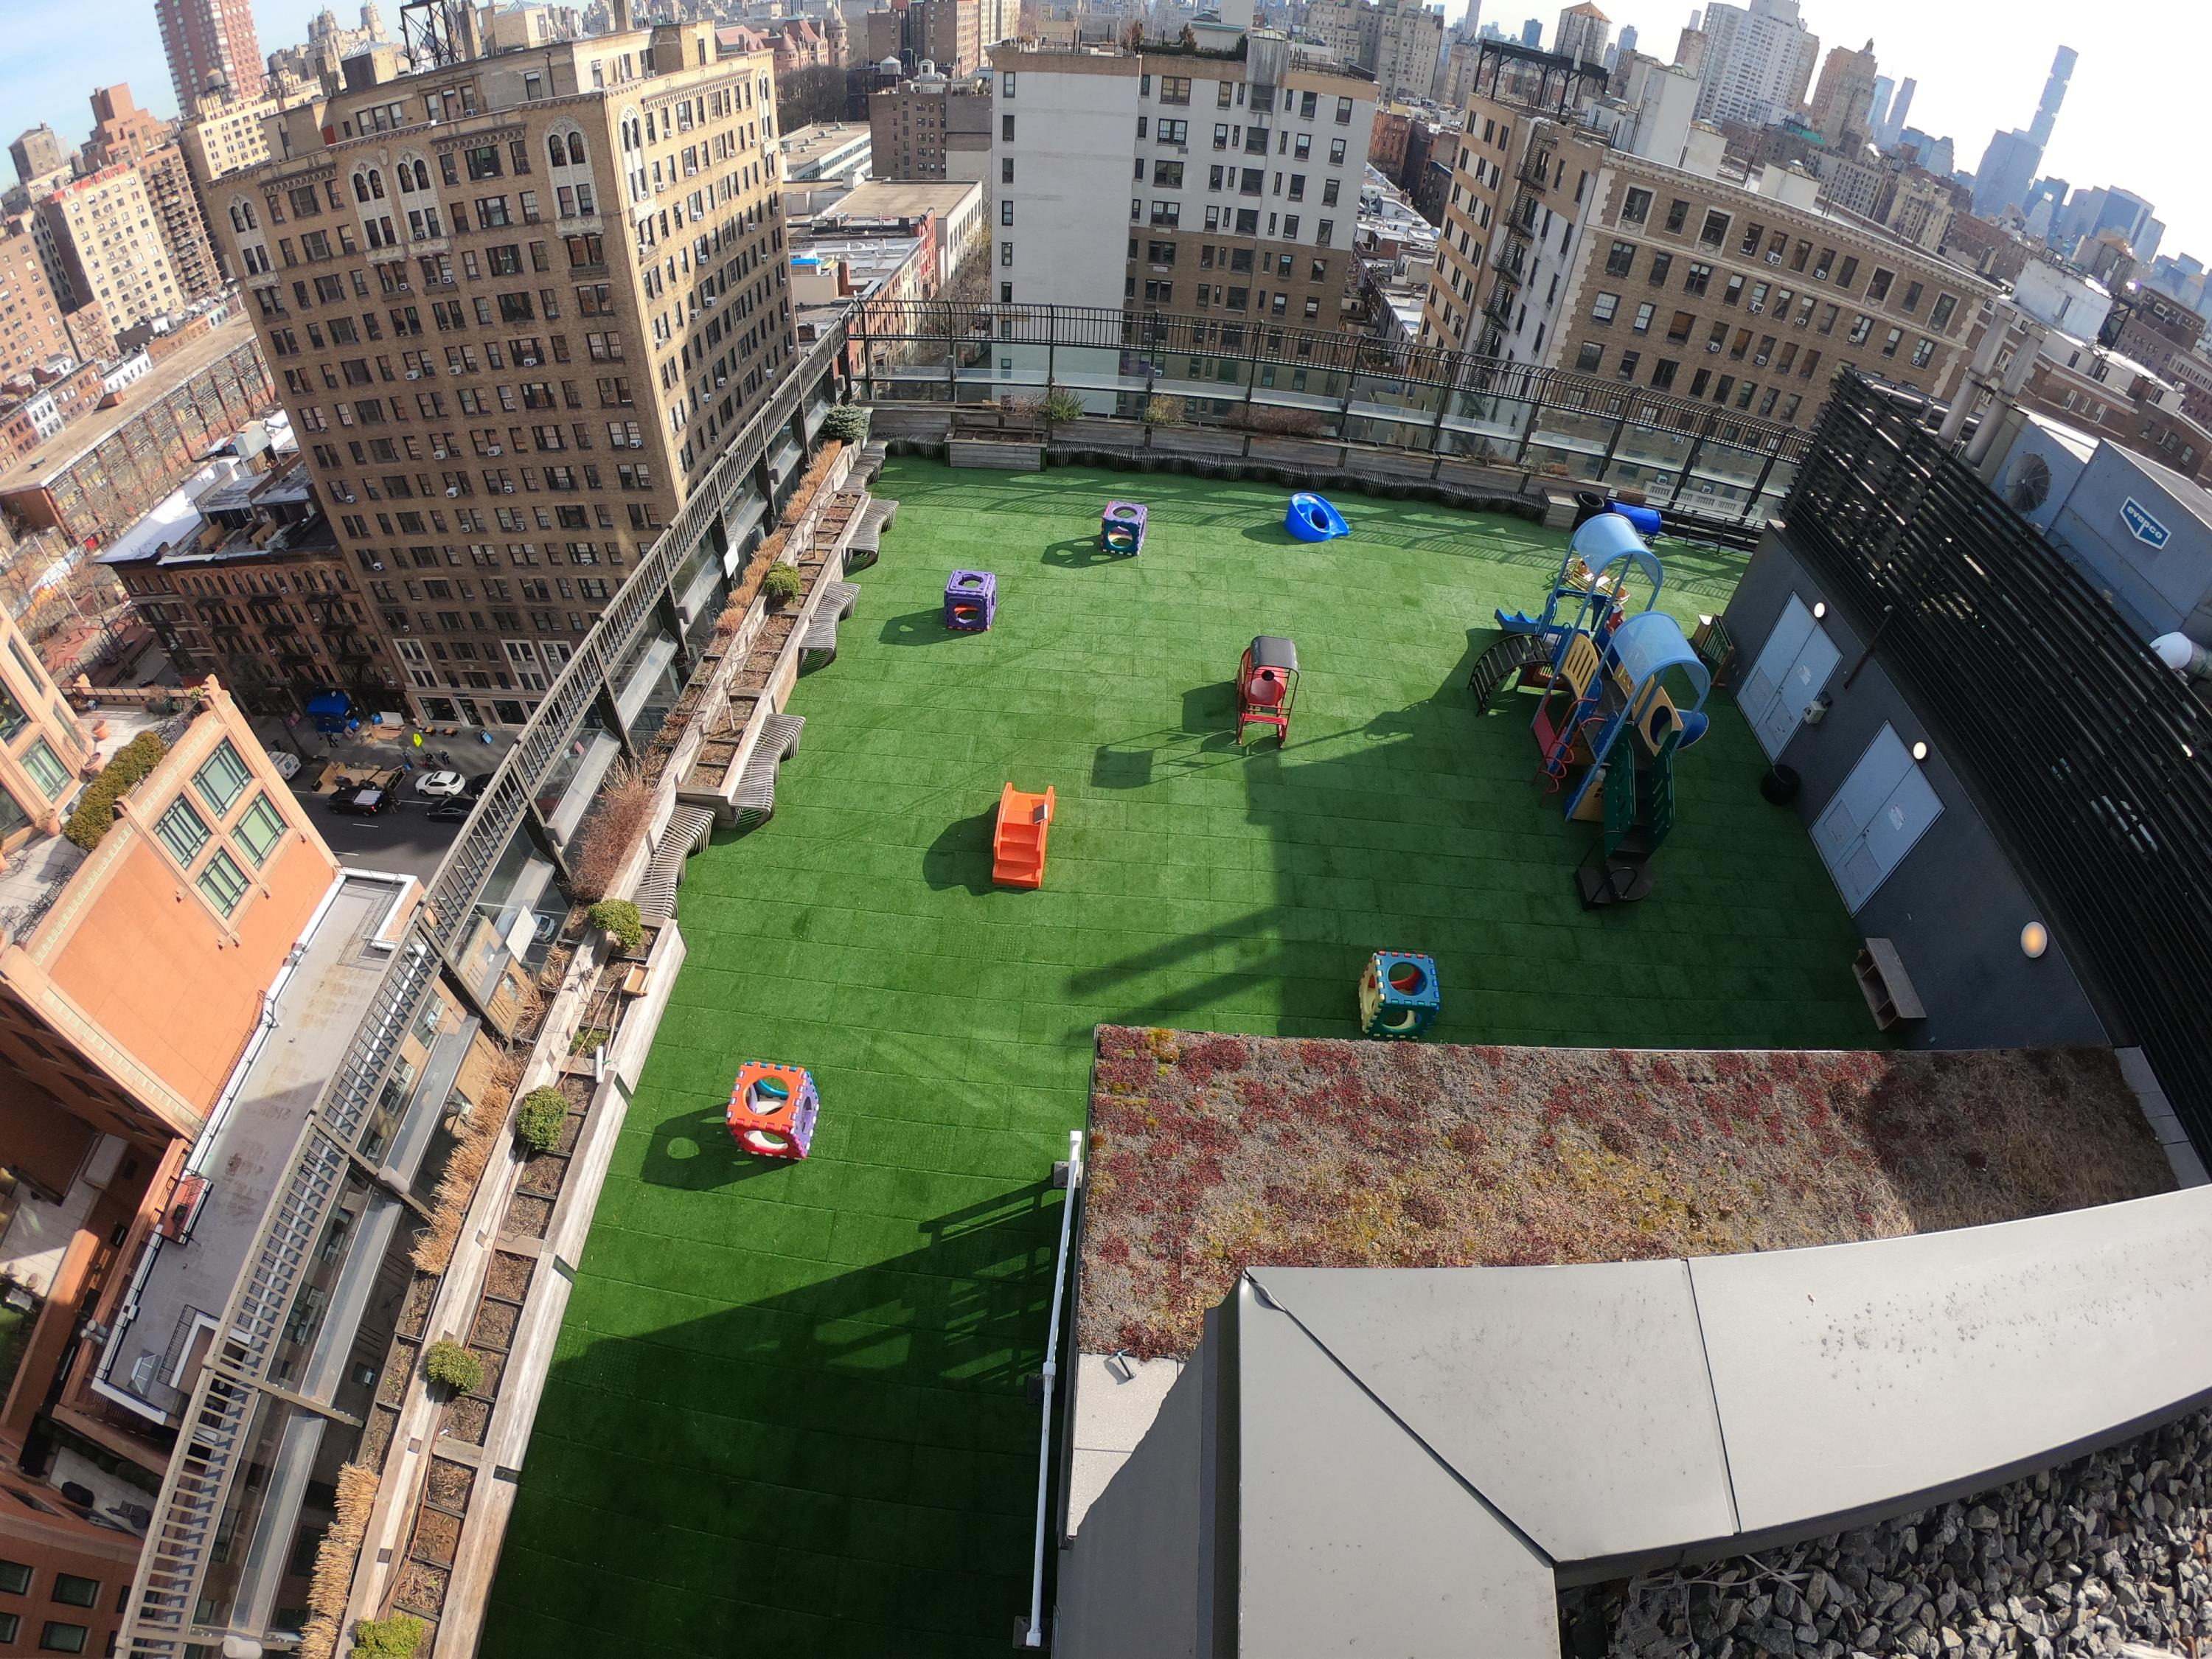 UNITY Surfacing at Rooftop Playground using Turf-Tiles